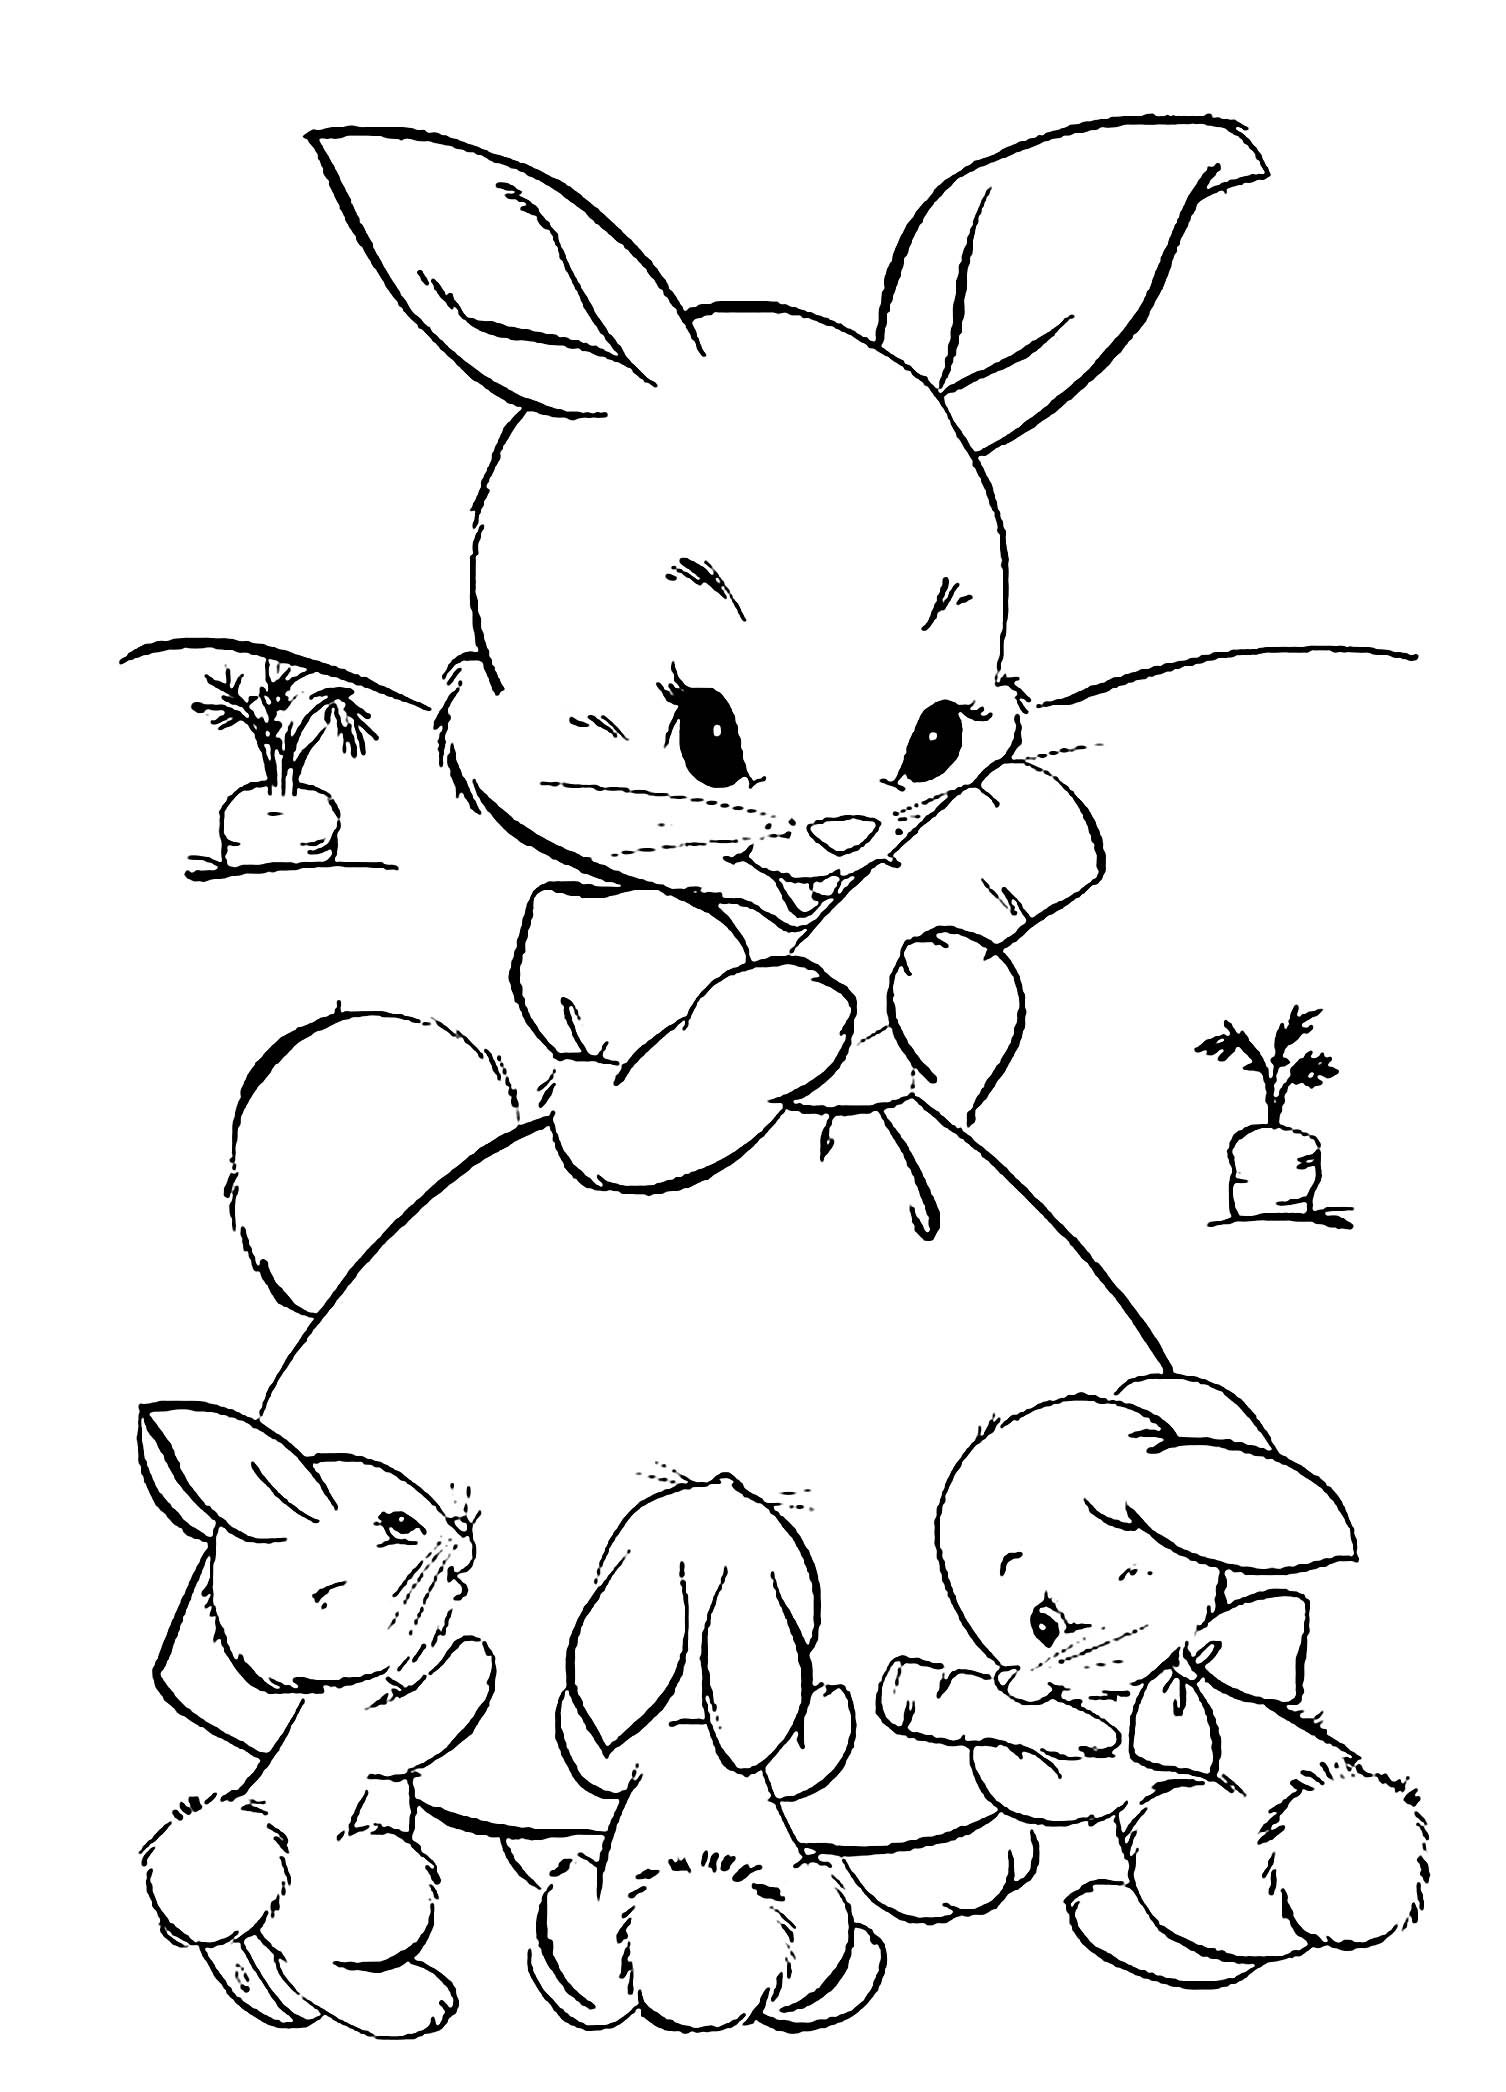 coloring kids rabbit rabbit free to color for children rabbit kids coloring pages coloring kids rabbit